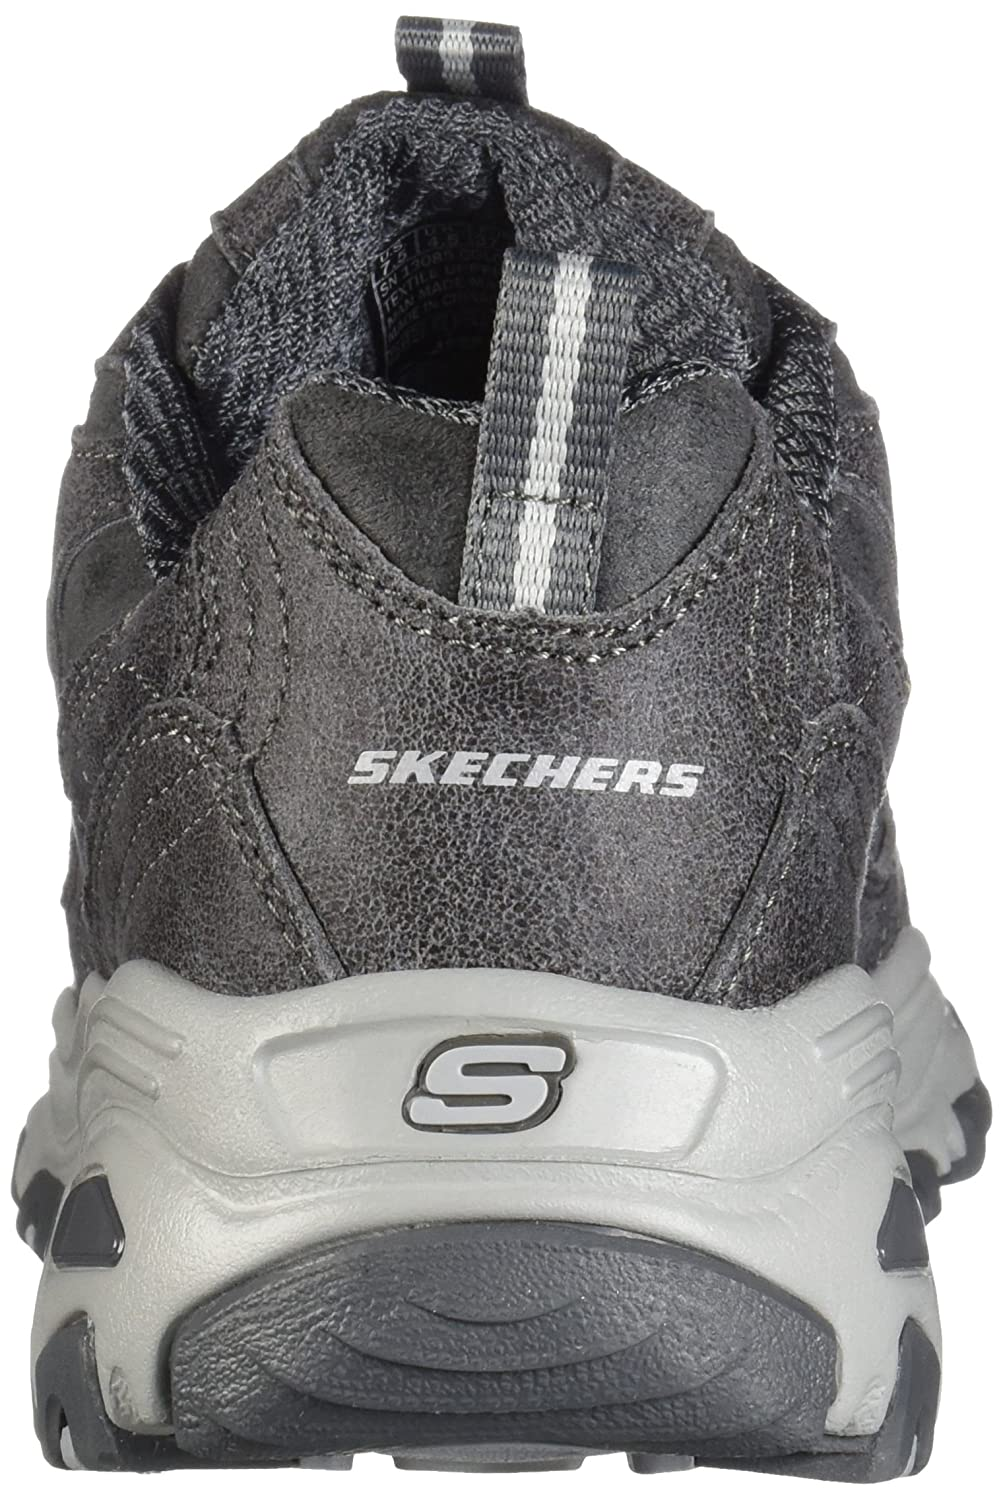 Skechers-D-039-Lites-Women-039-s-Casual-Lightweight-Fashion-Sneakers-Athletic-Shoes thumbnail 159